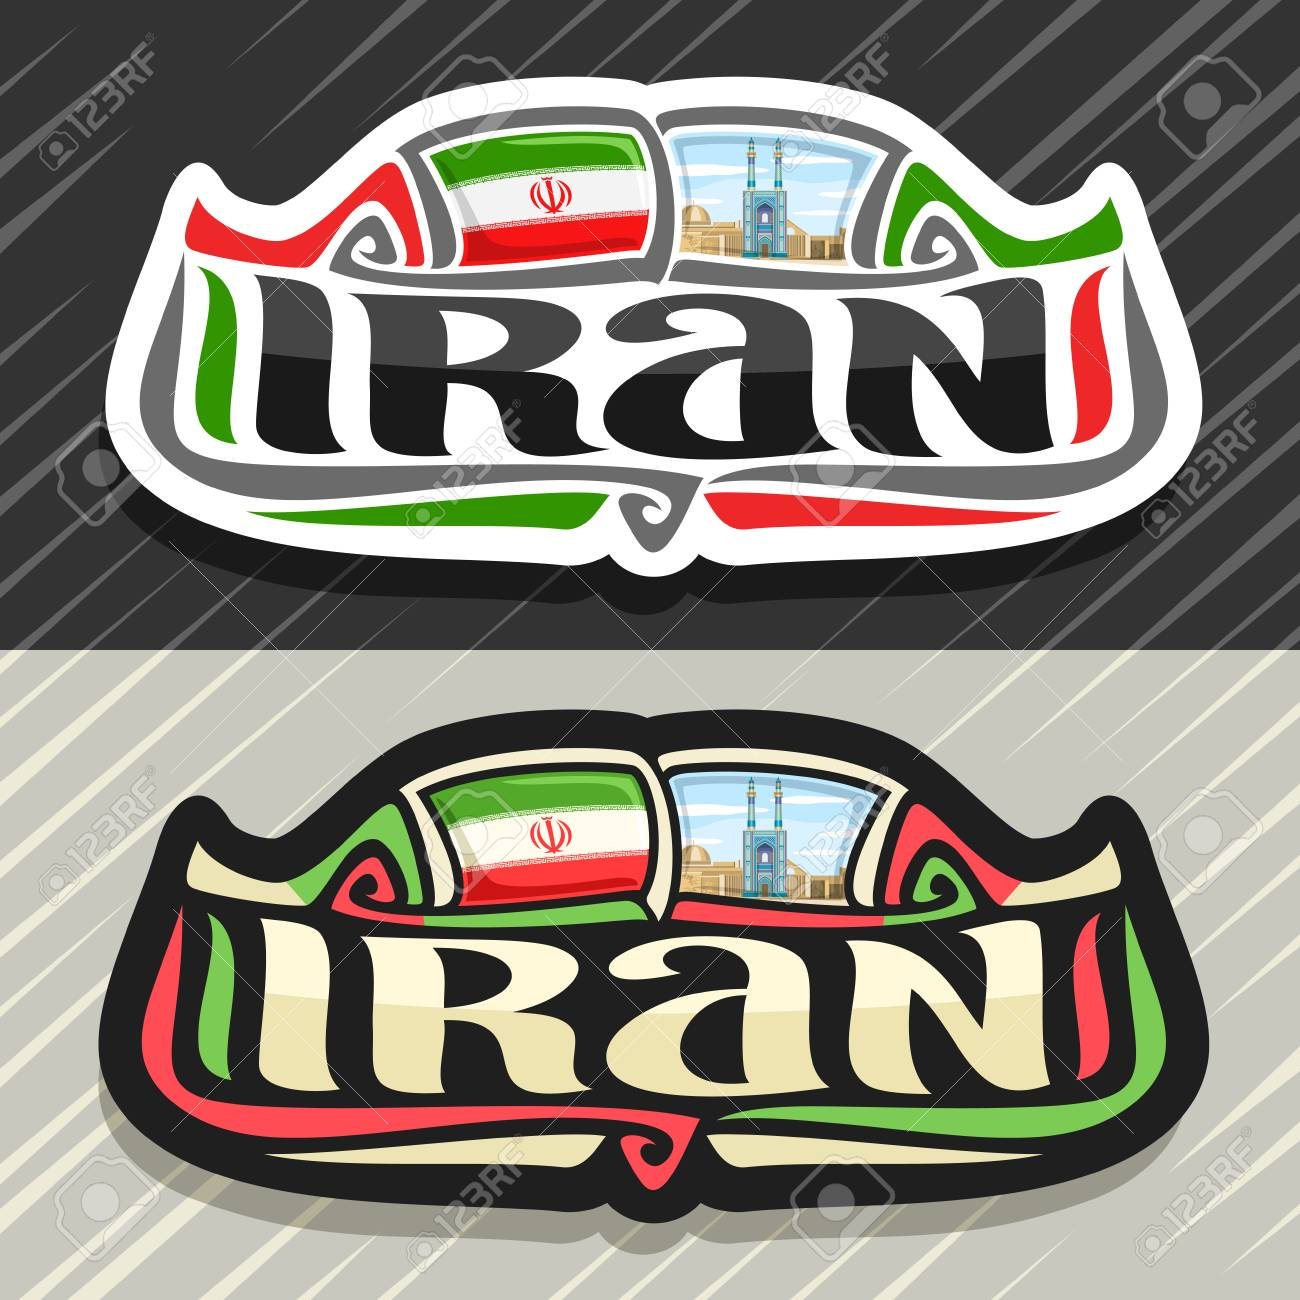 Image result for Iranian word